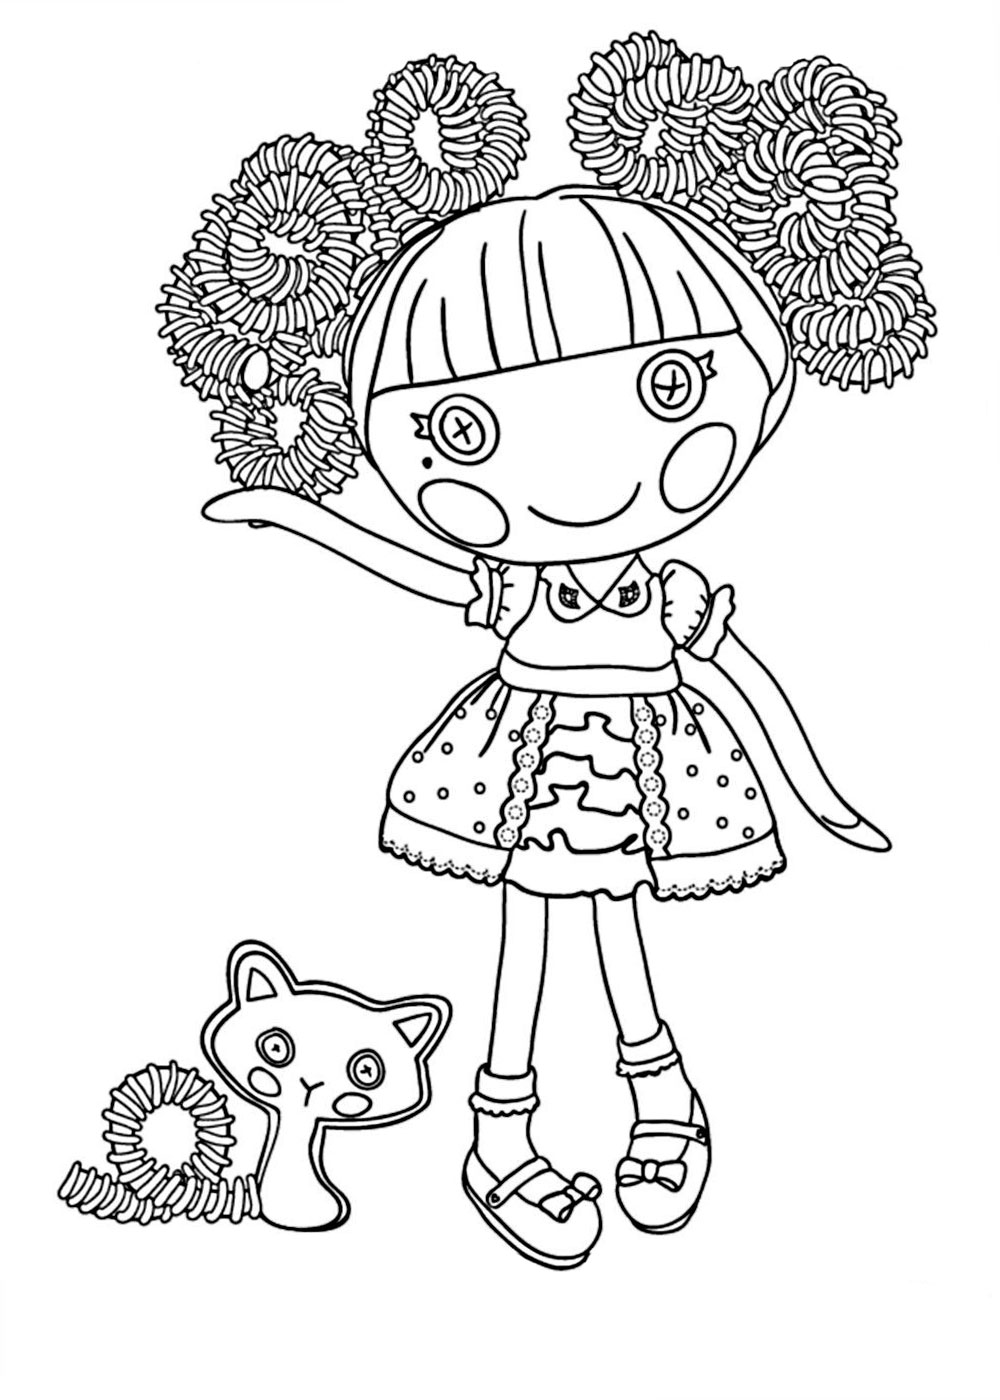 lalaloopsy babies coloring pages - photo#28